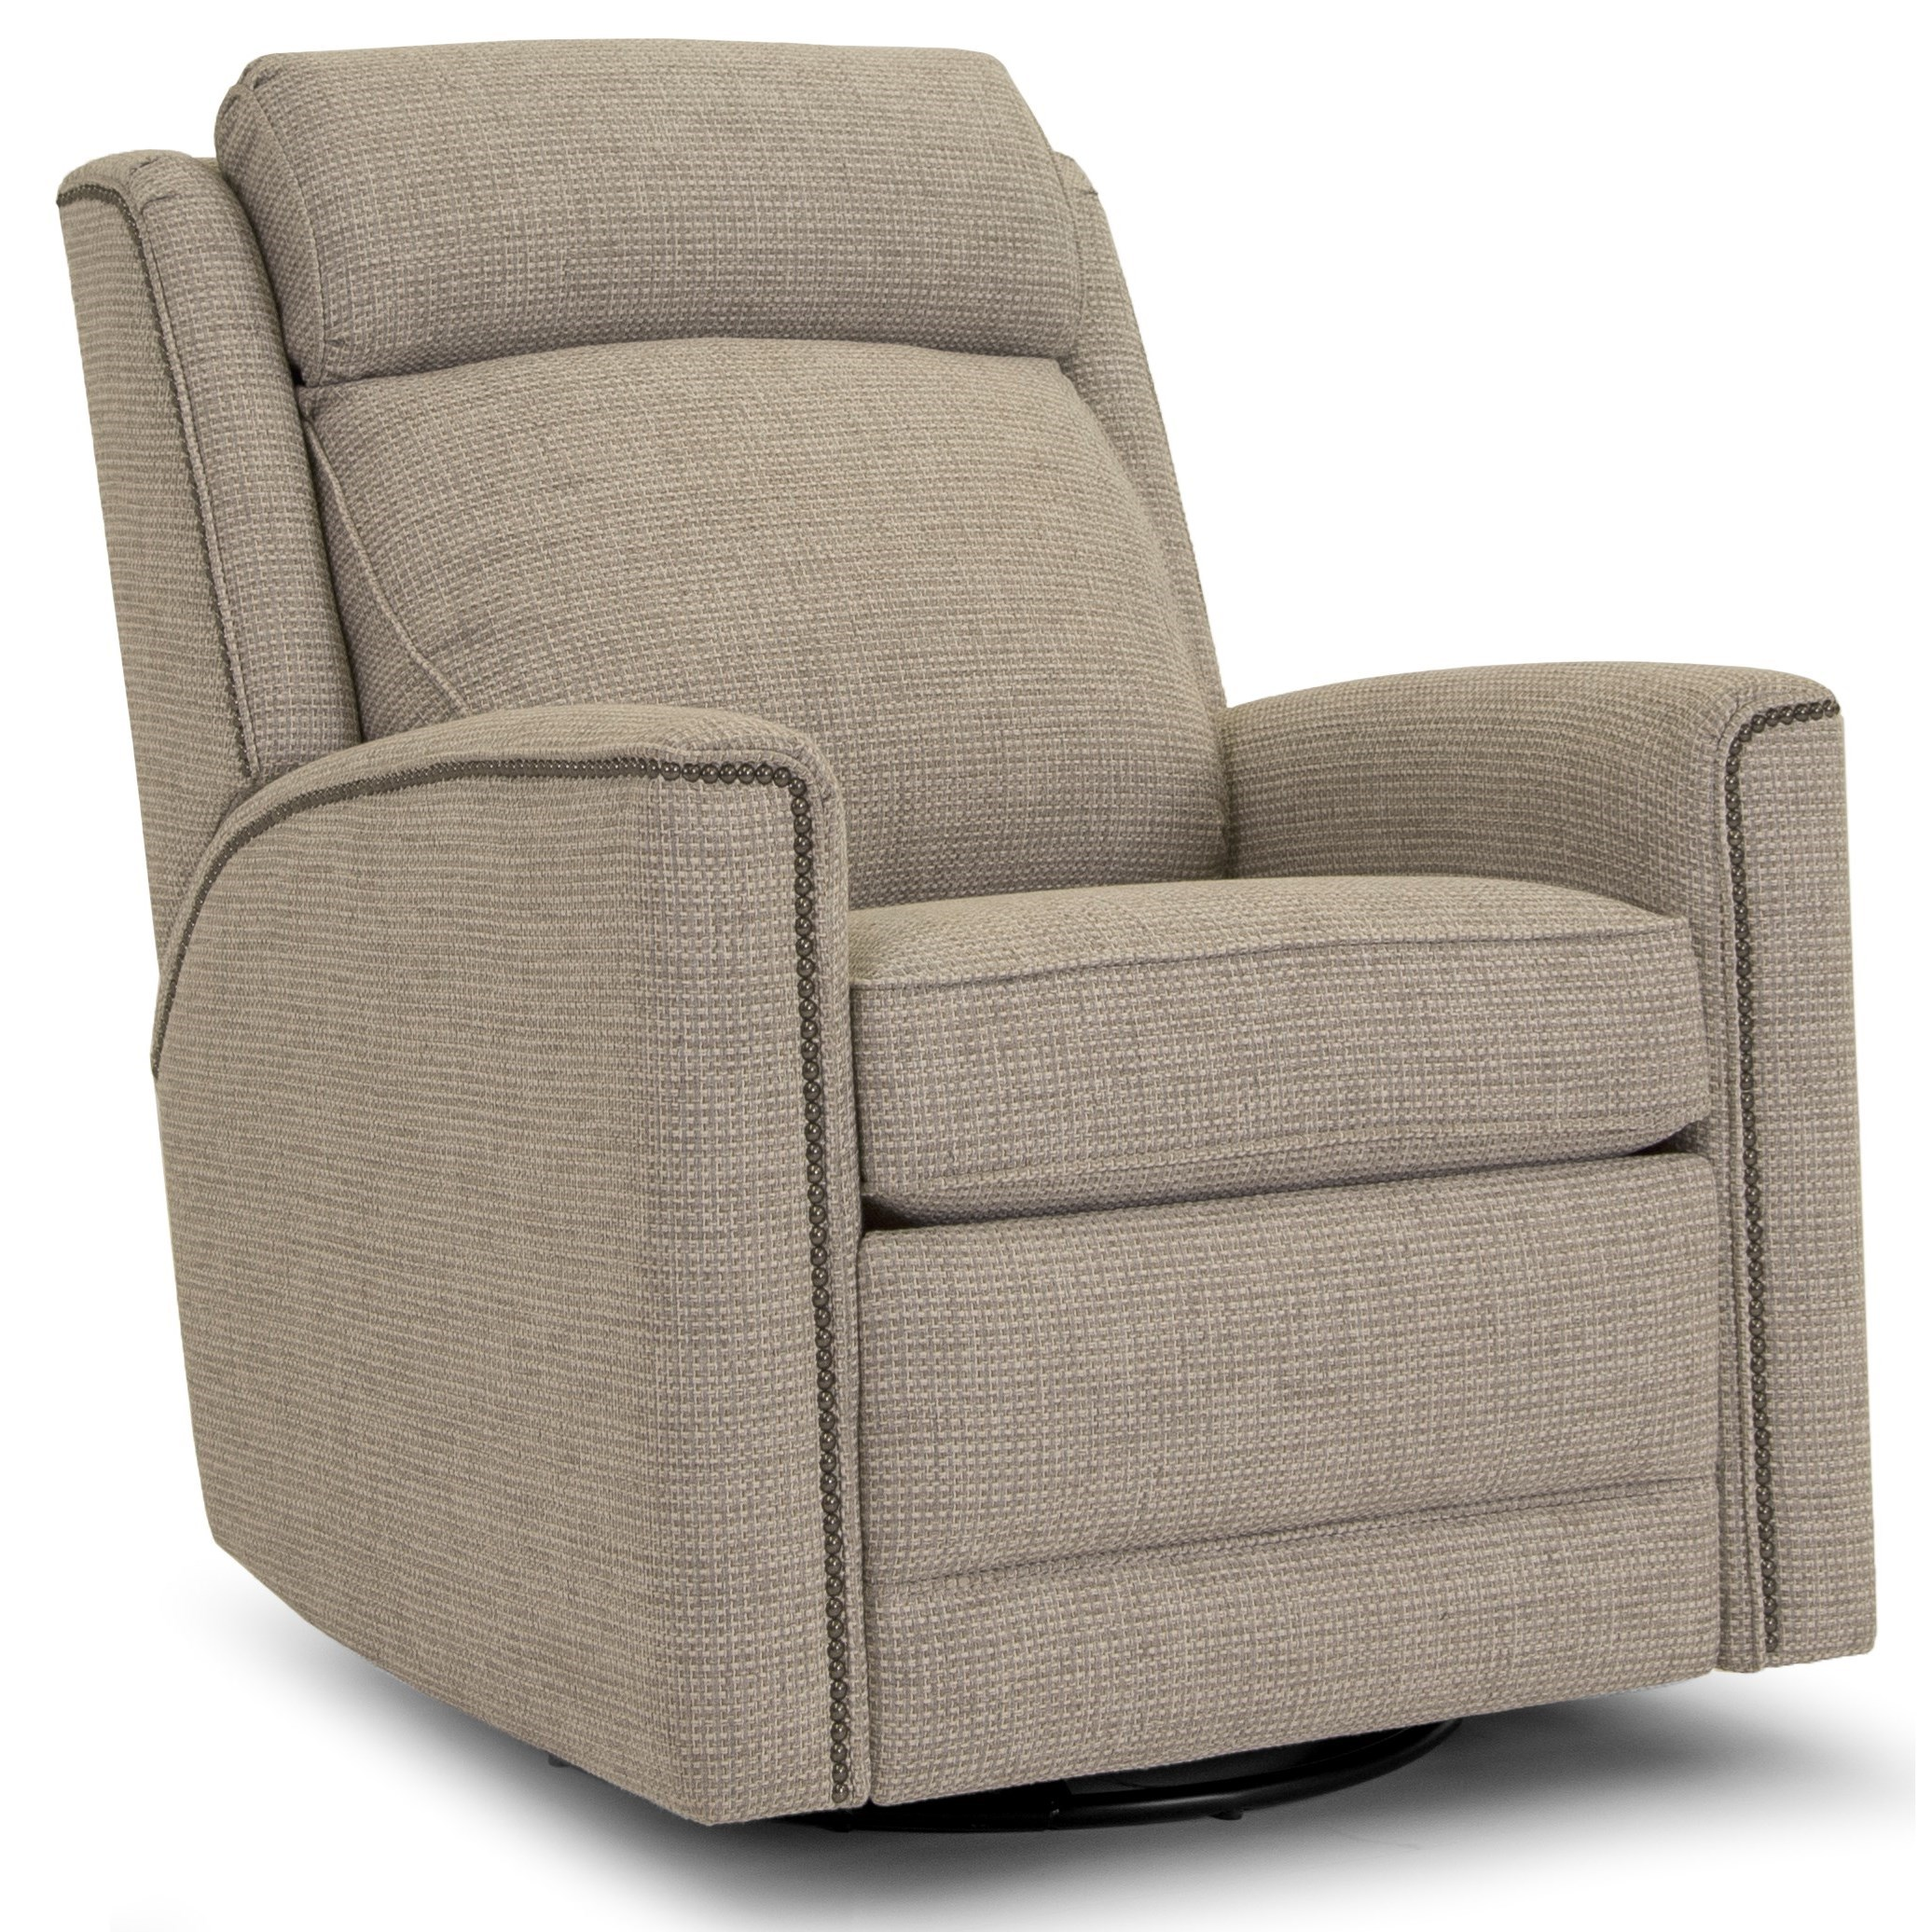 736 Power Recliner by Smith Brothers at Coconis Furniture & Mattress 1st